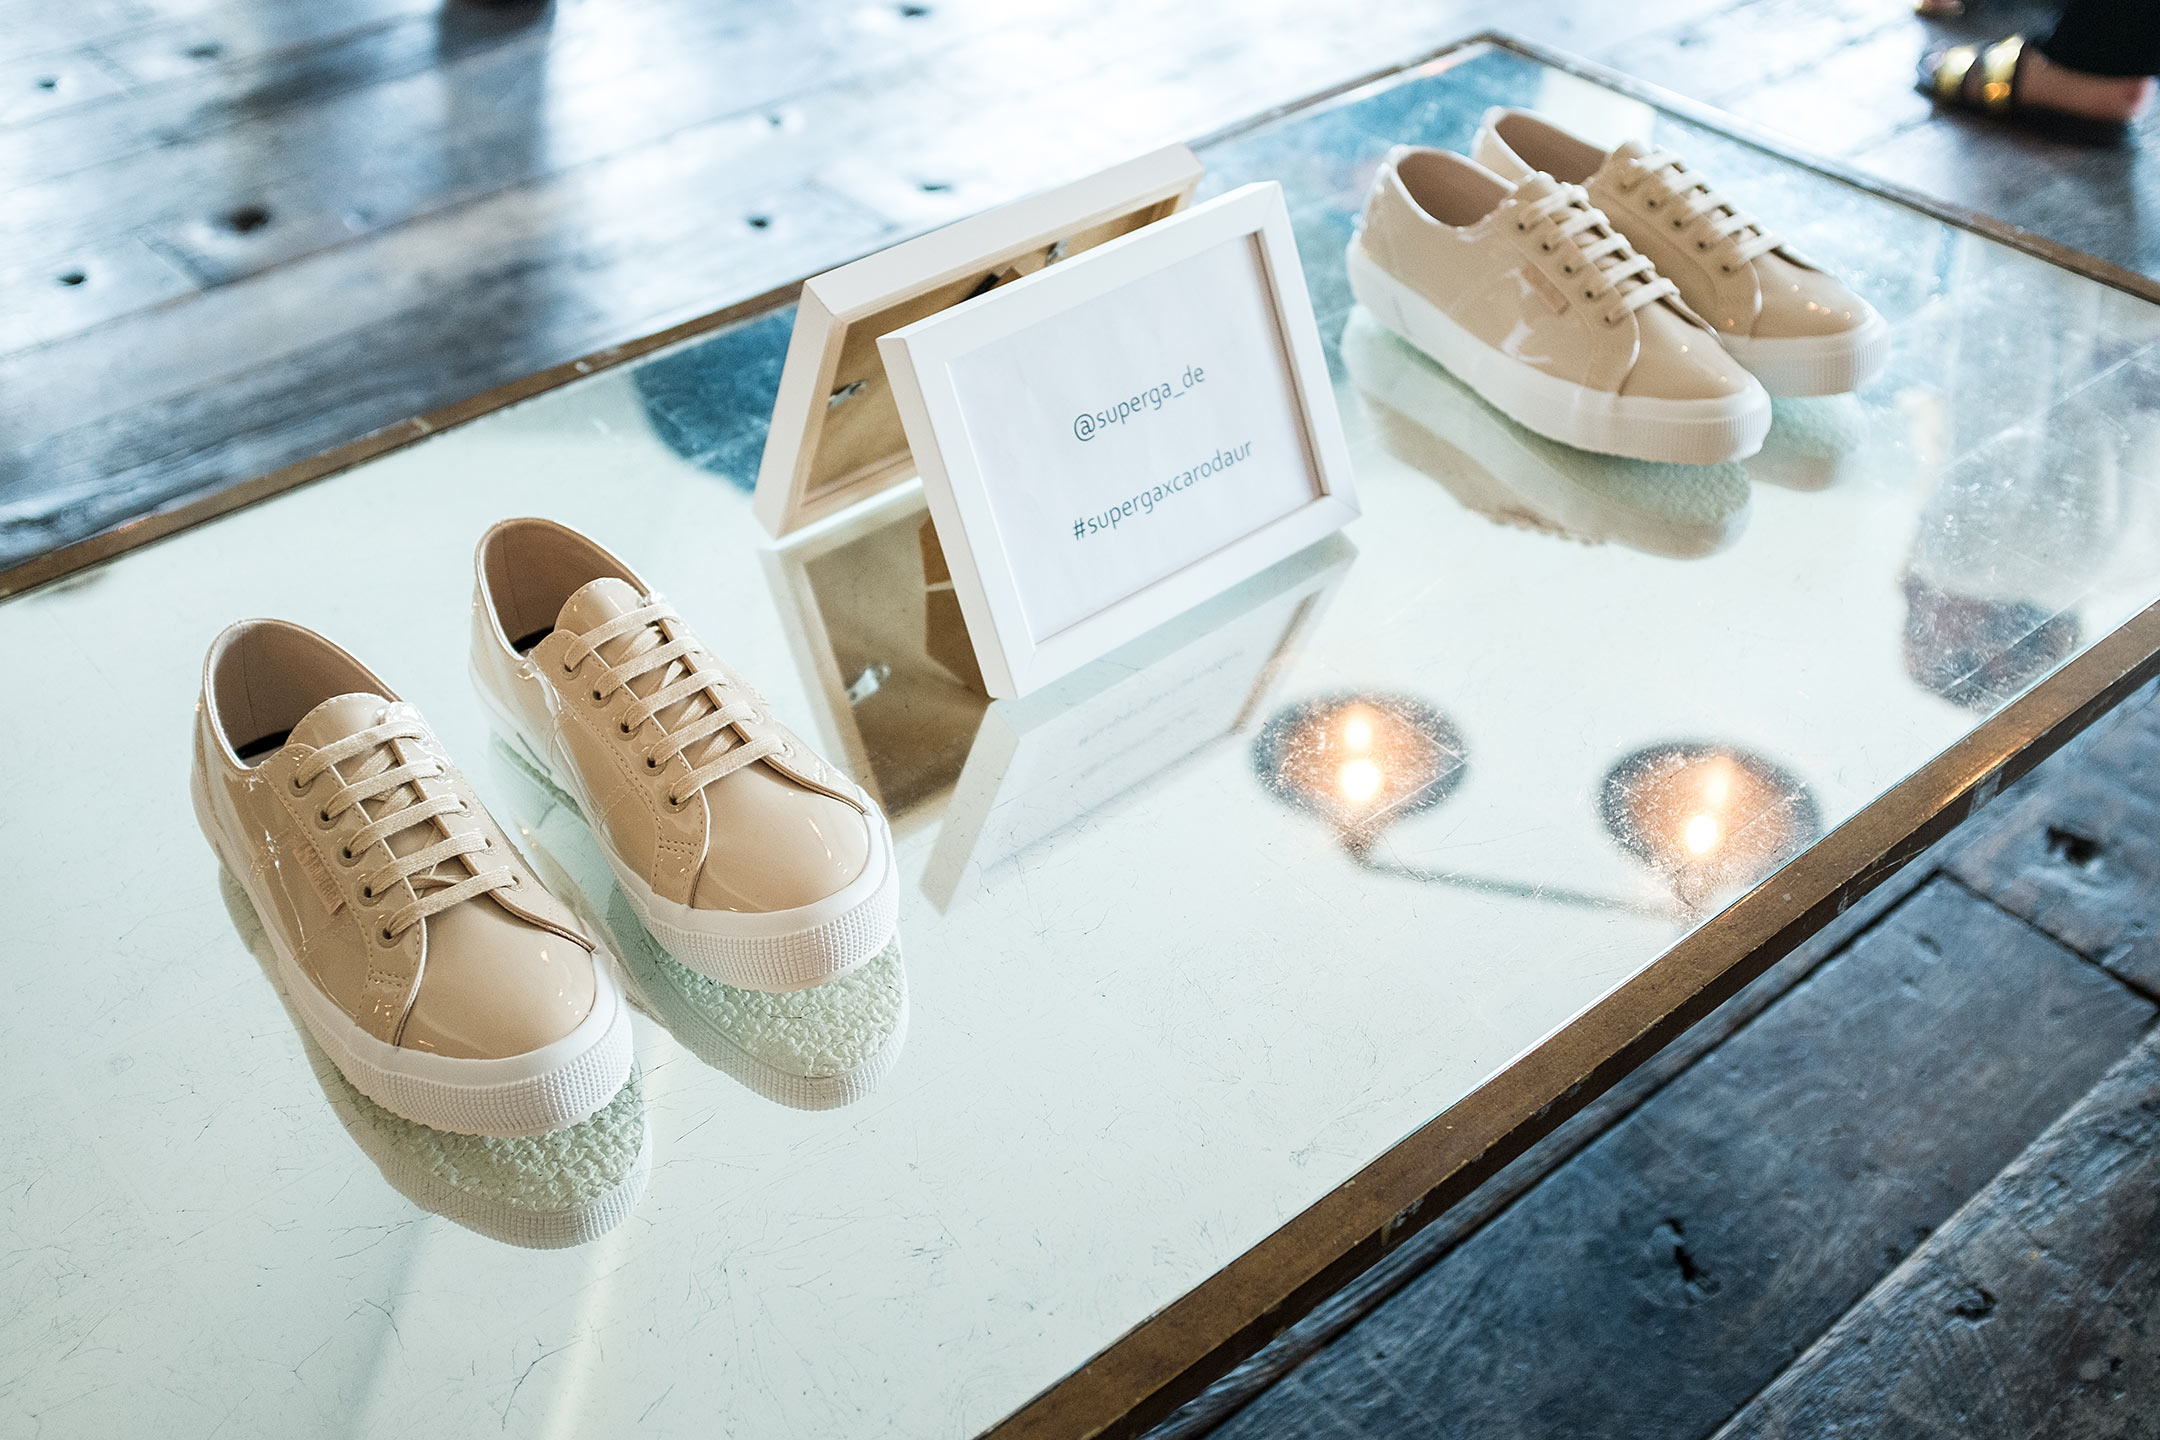 Superga CaroDaur Schuhe Schuhkollektion Soho House Berlin Event Sunnyinga